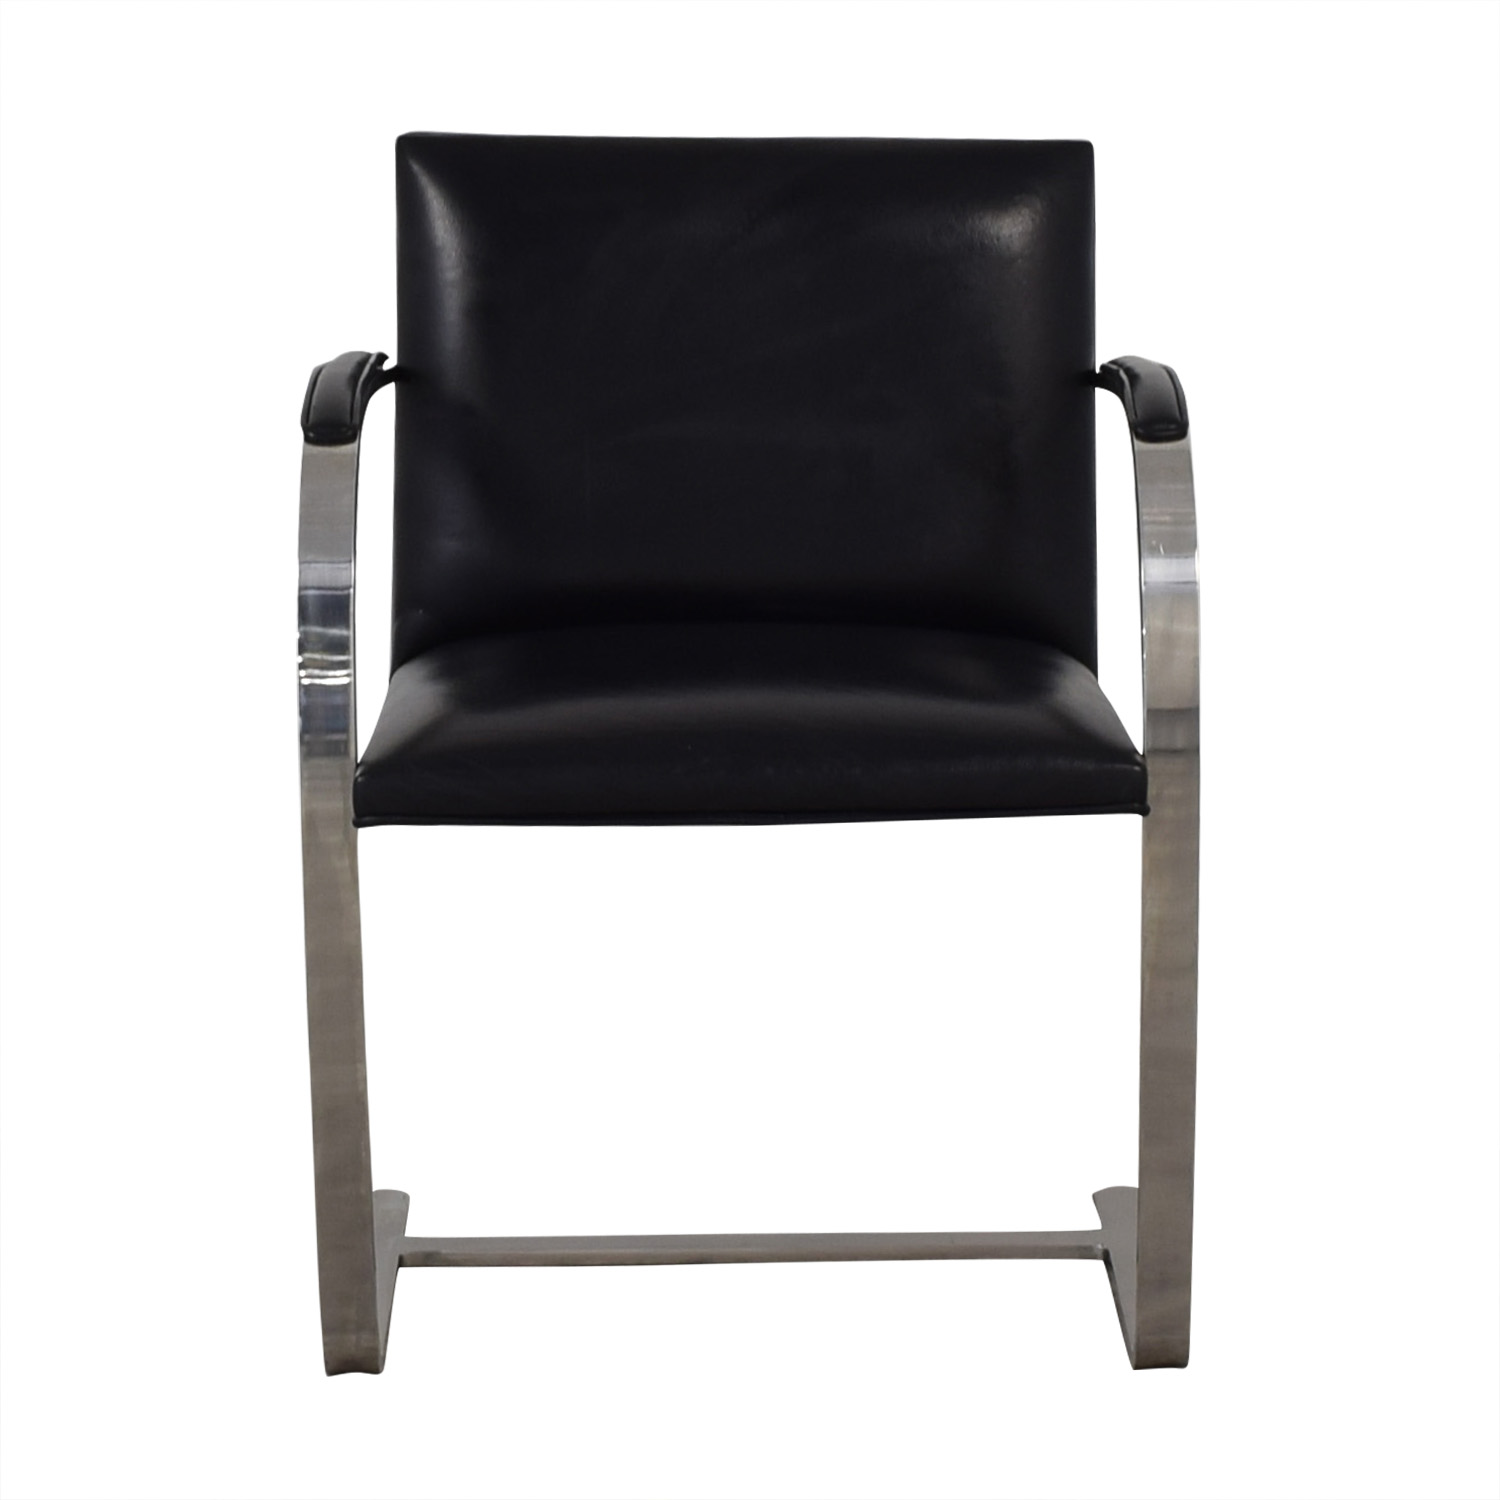 Knoll Knoll BRNO Chair second hand